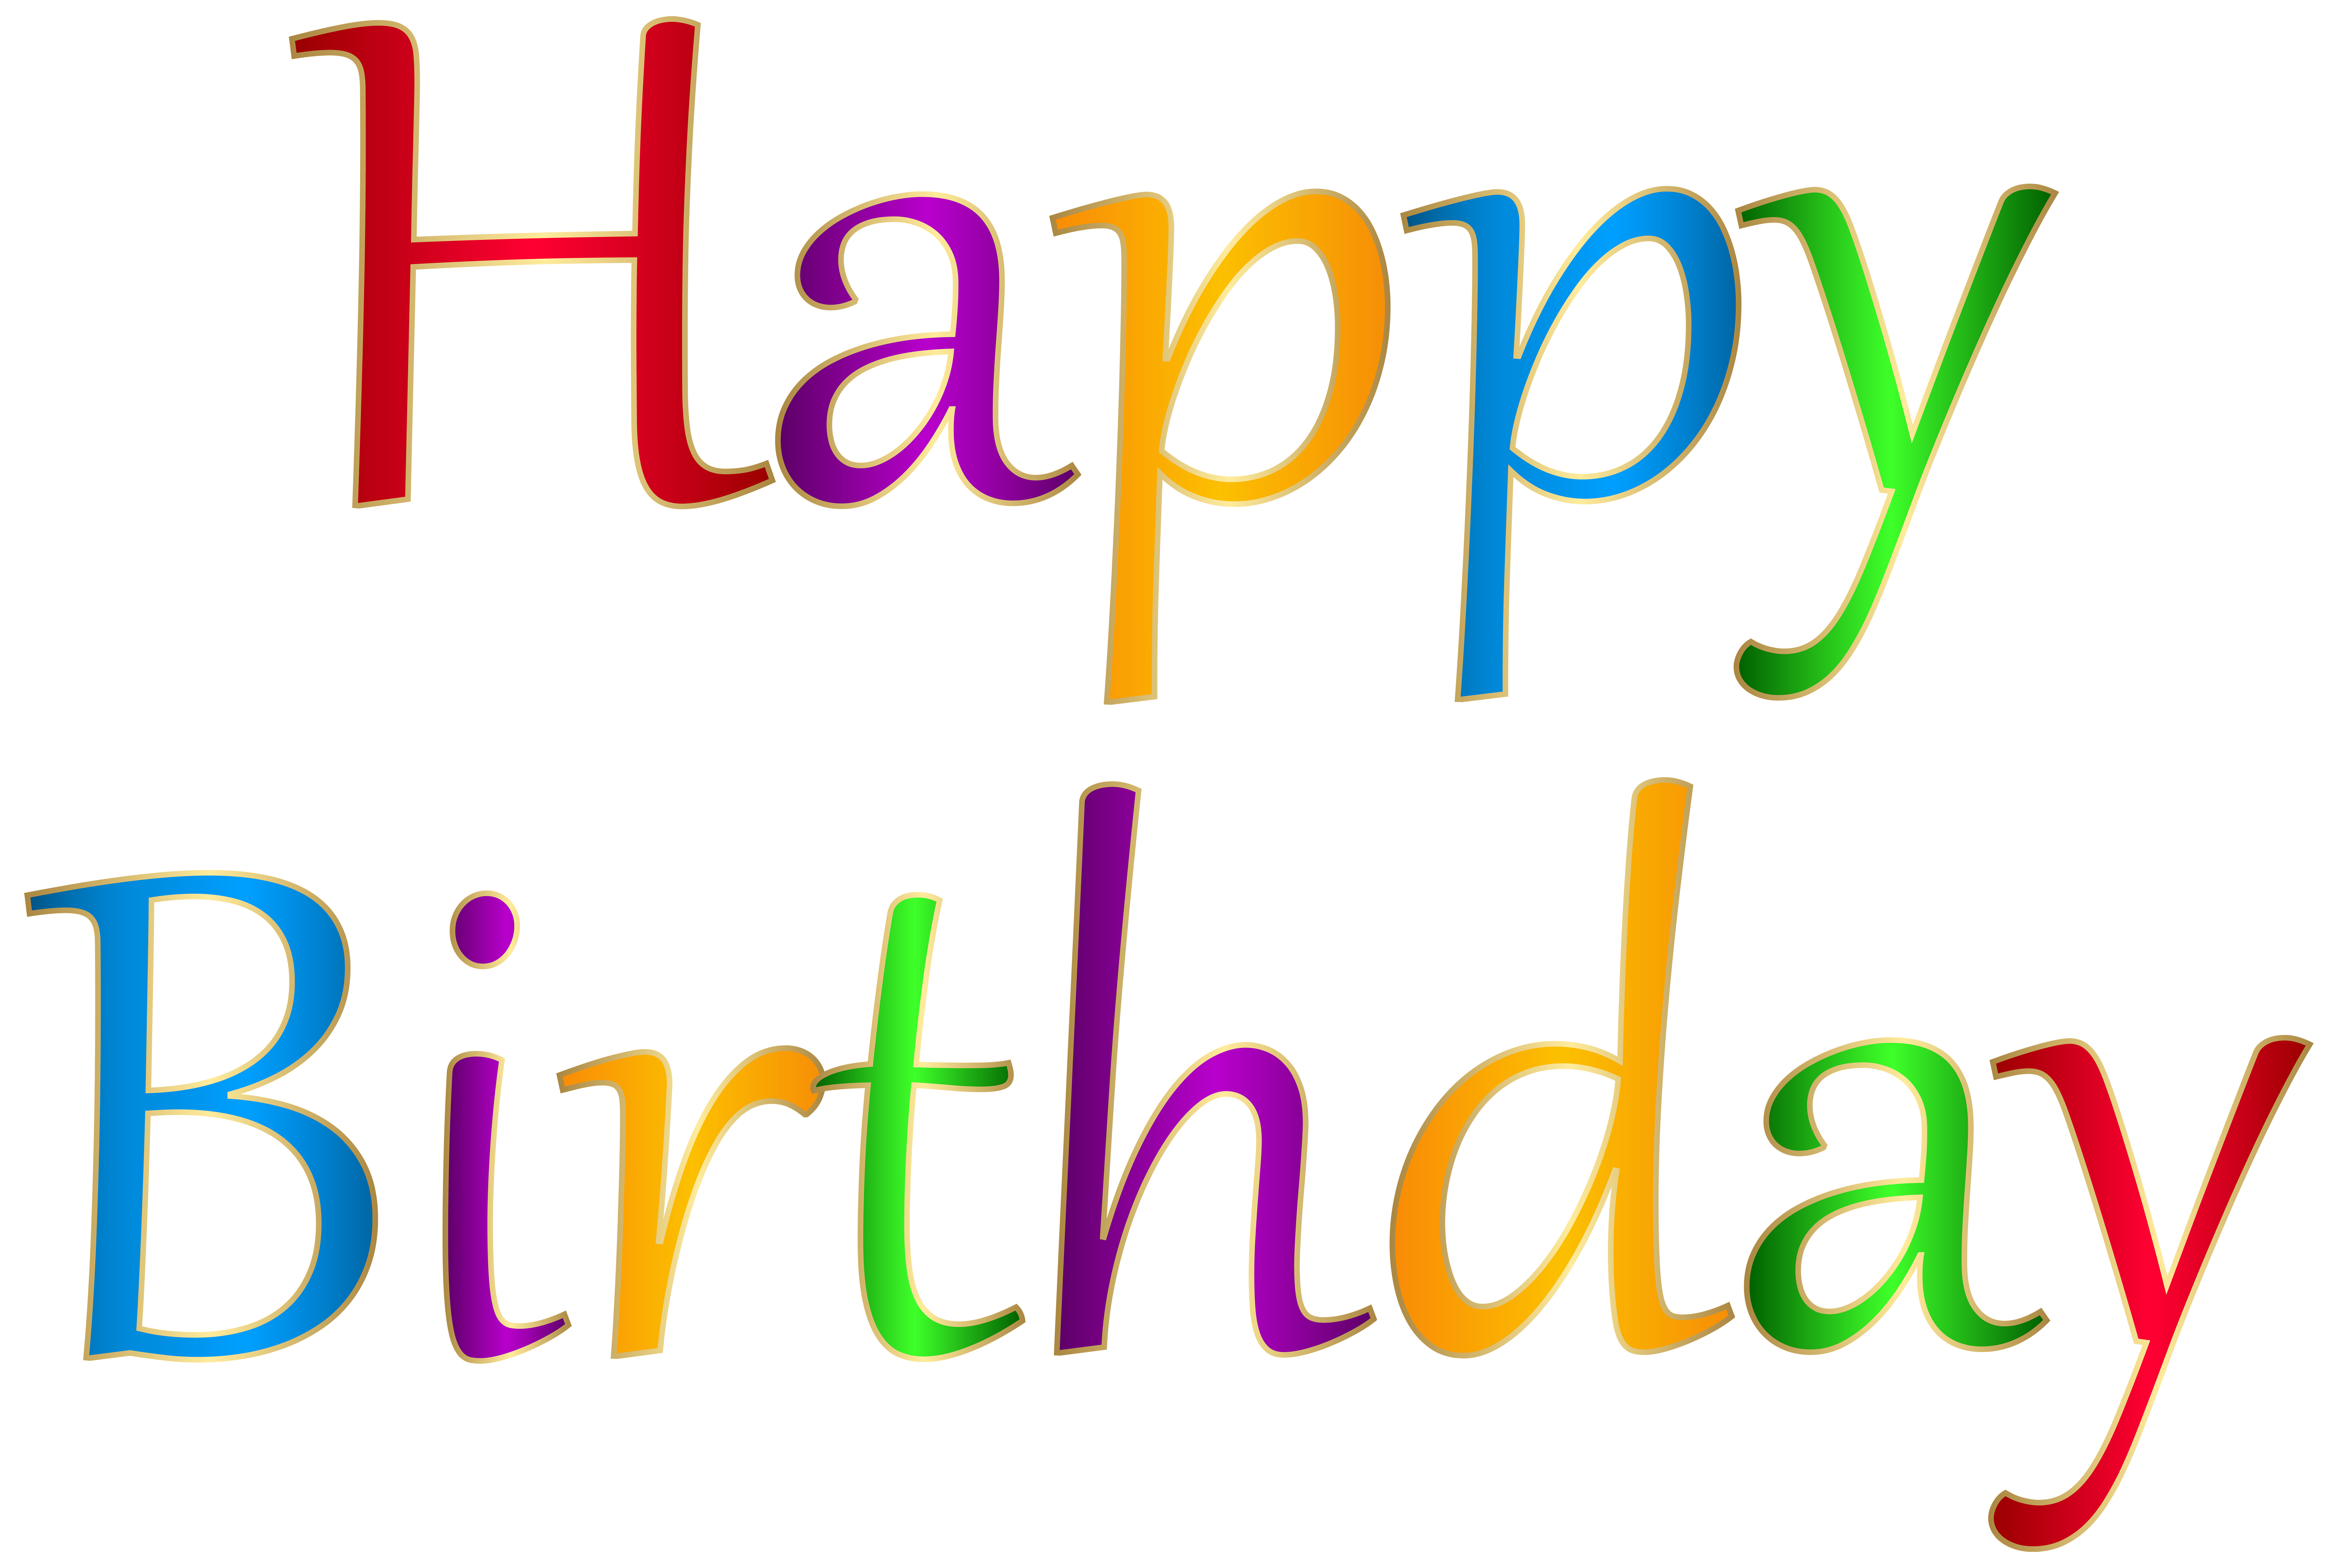 Now you can download Happy Birthday High Quality PNG